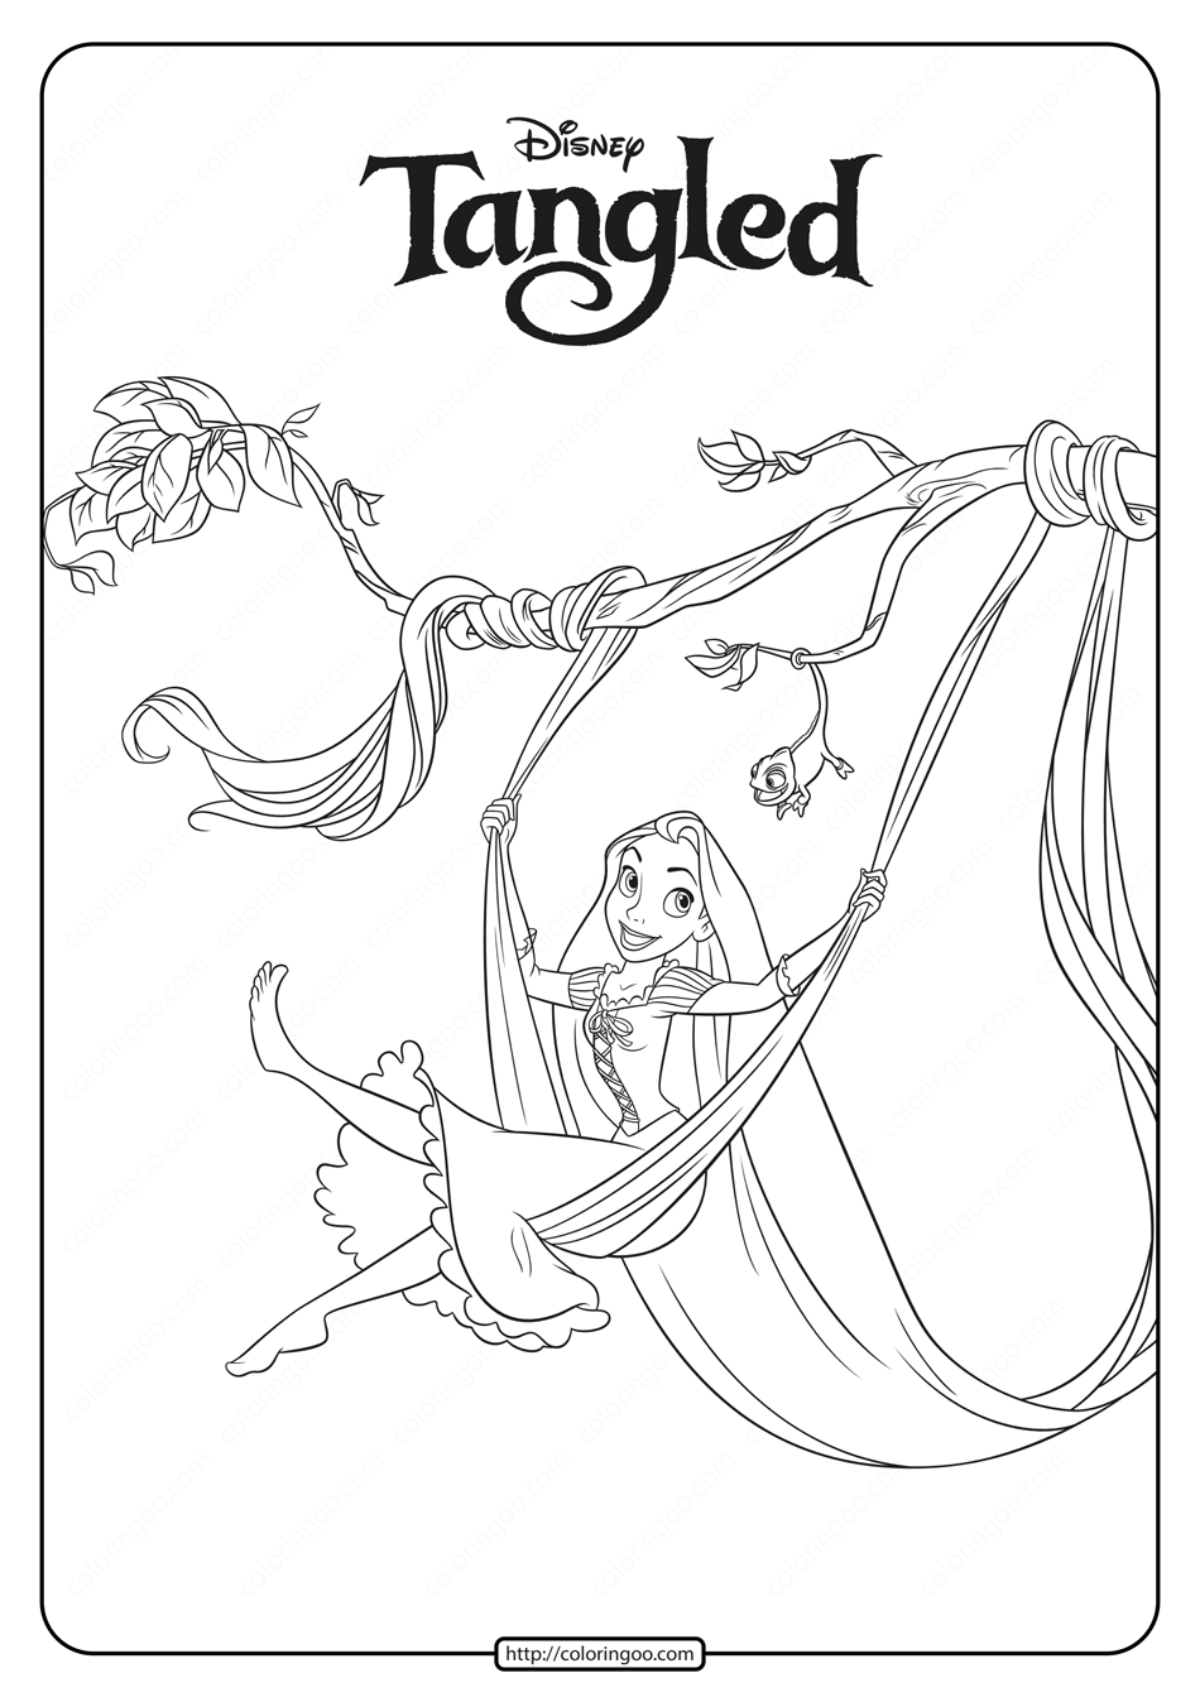 Free Printable Disney Tangled Coloring Pages